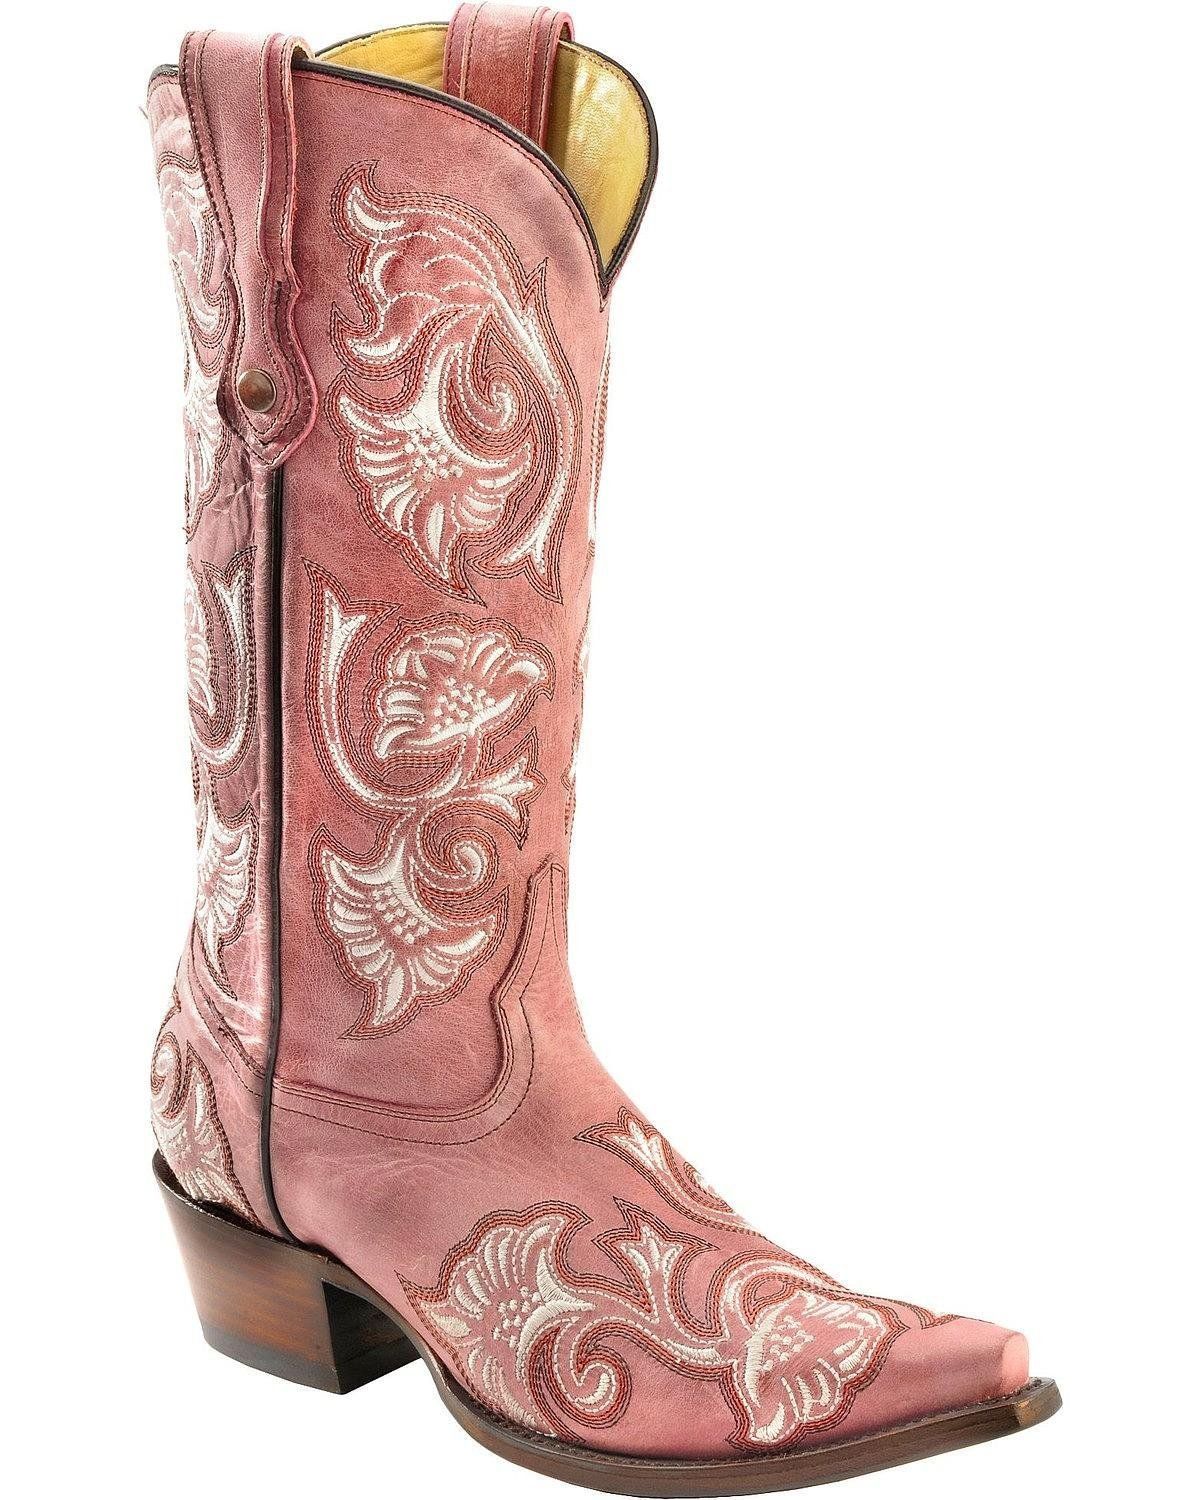 CORRAL Women's Floral Embroidered Cowgirl Boot Snip Toe - G1087 B071KXP22R 6.5 M US|Pink